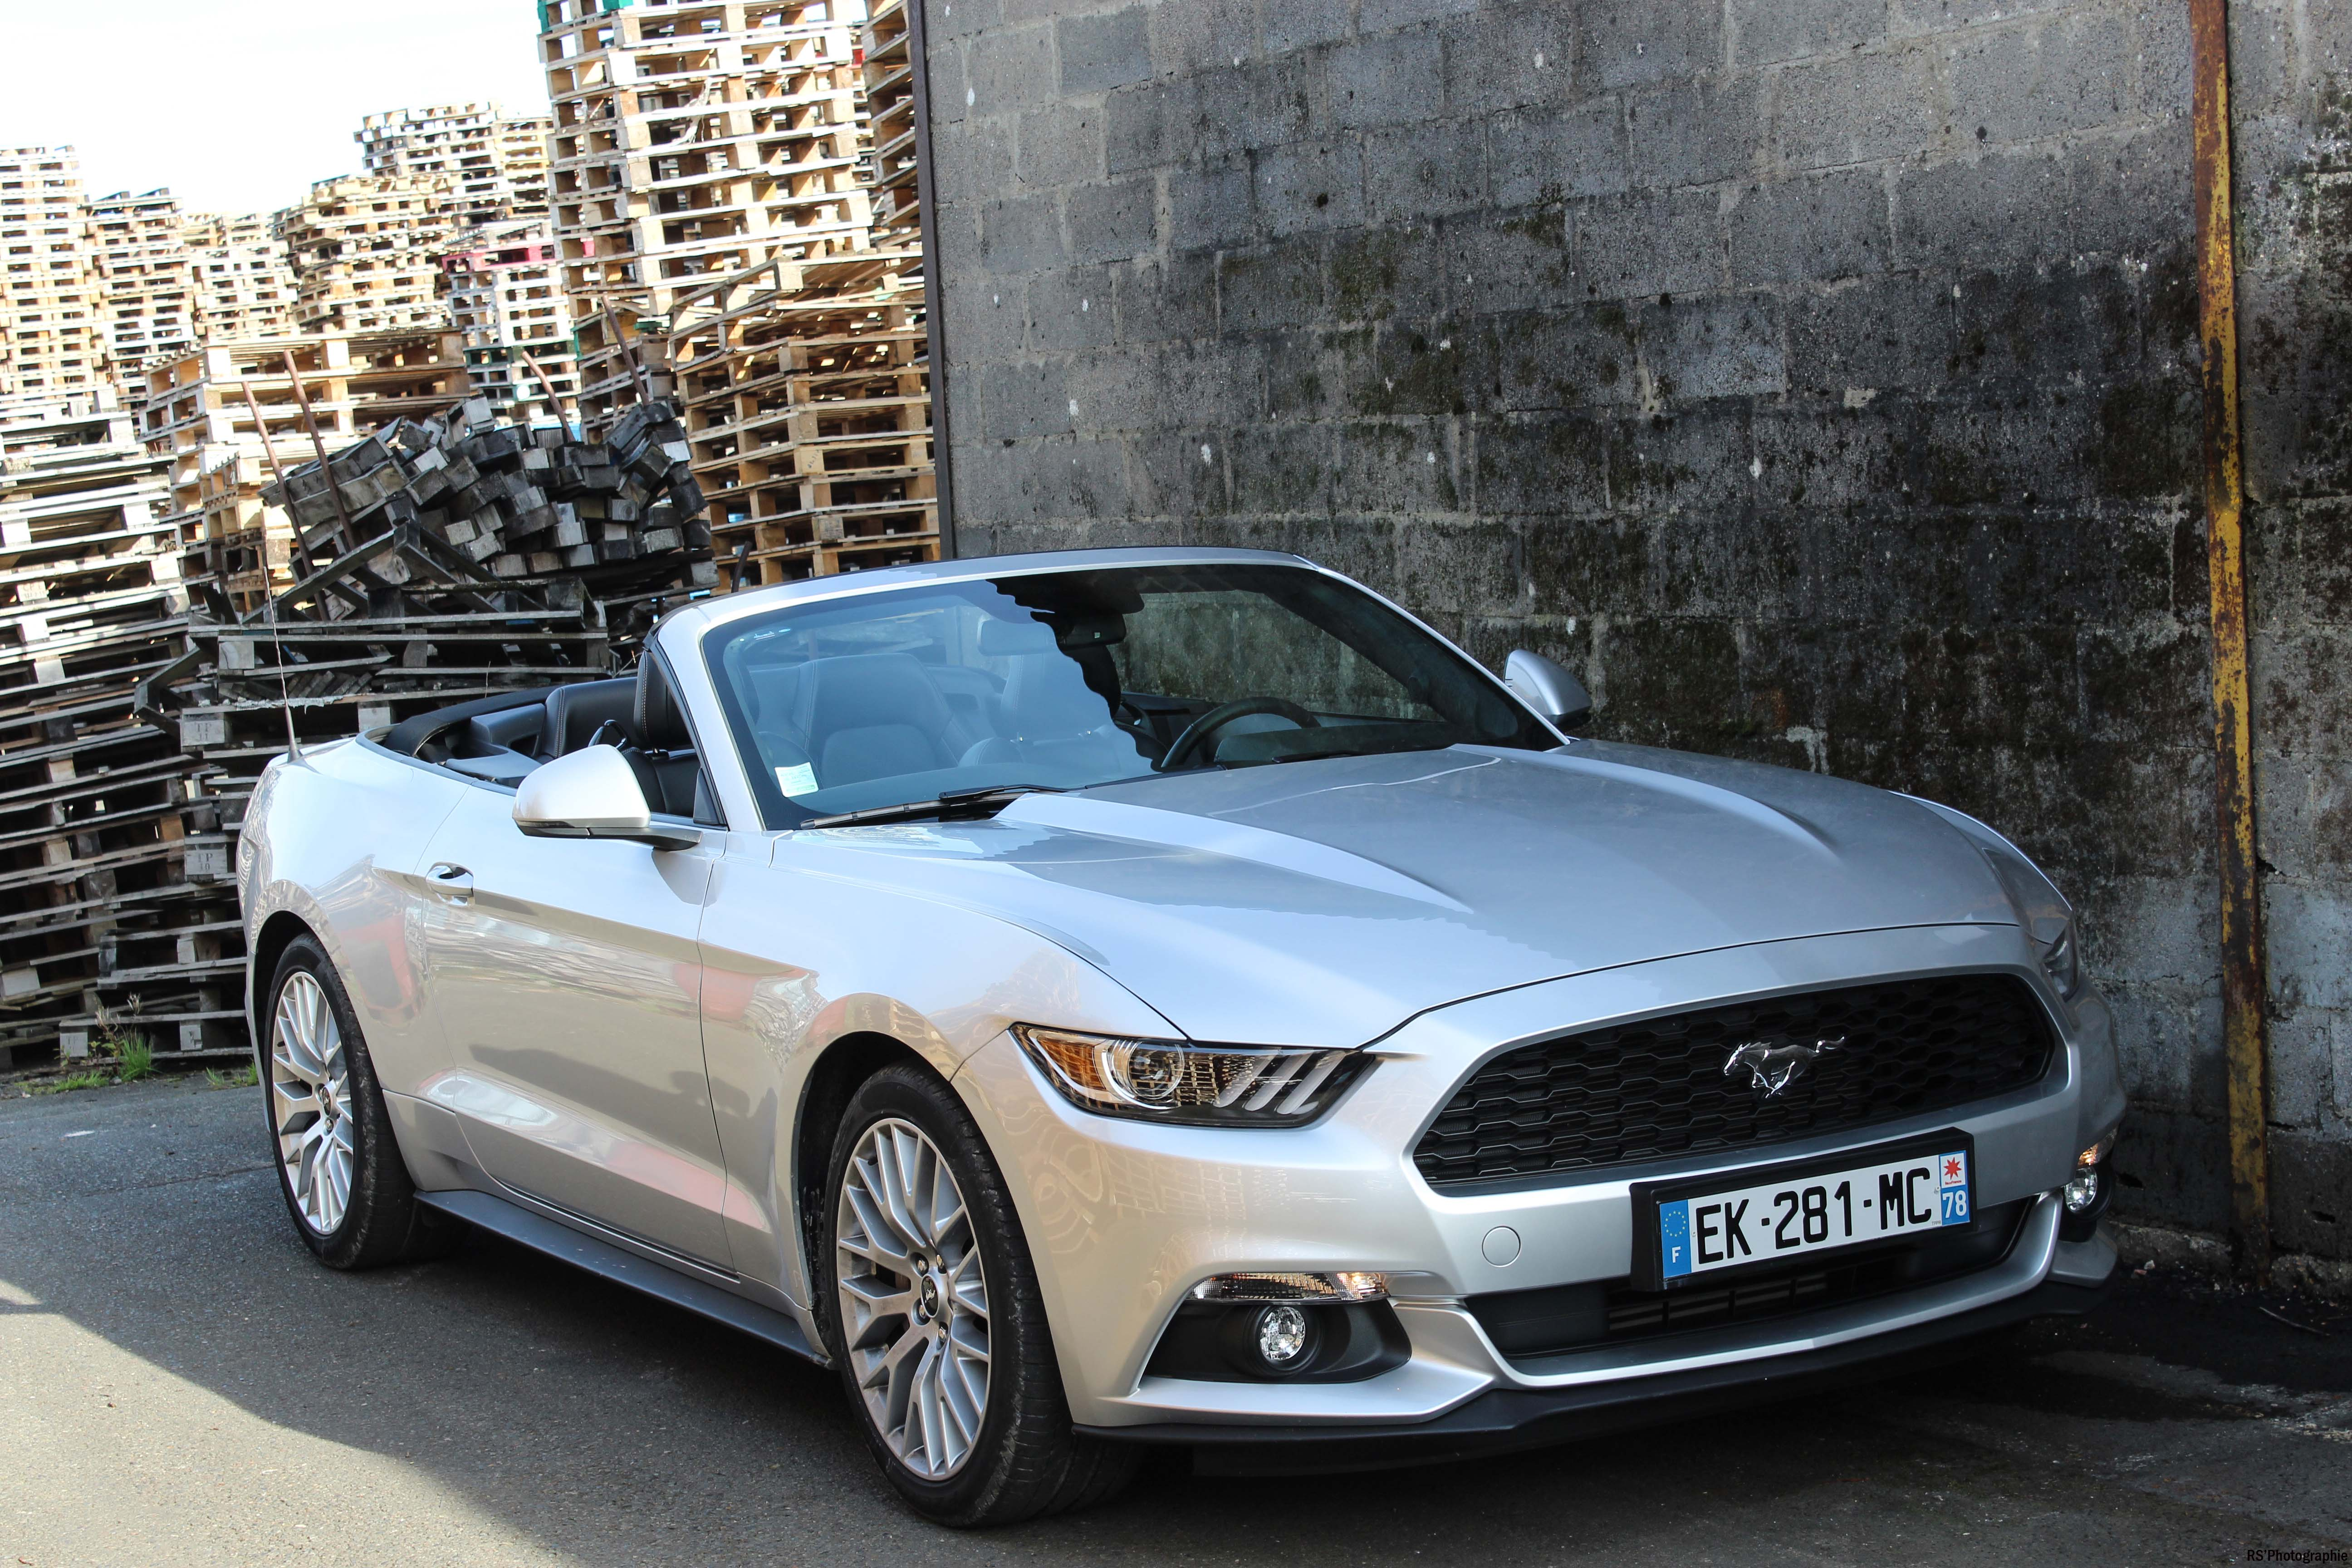 fordmustangeconvertible31-ford-mustang-convertible-ecoboost-avant-front-Arnaud Demasier-RSPhotographie